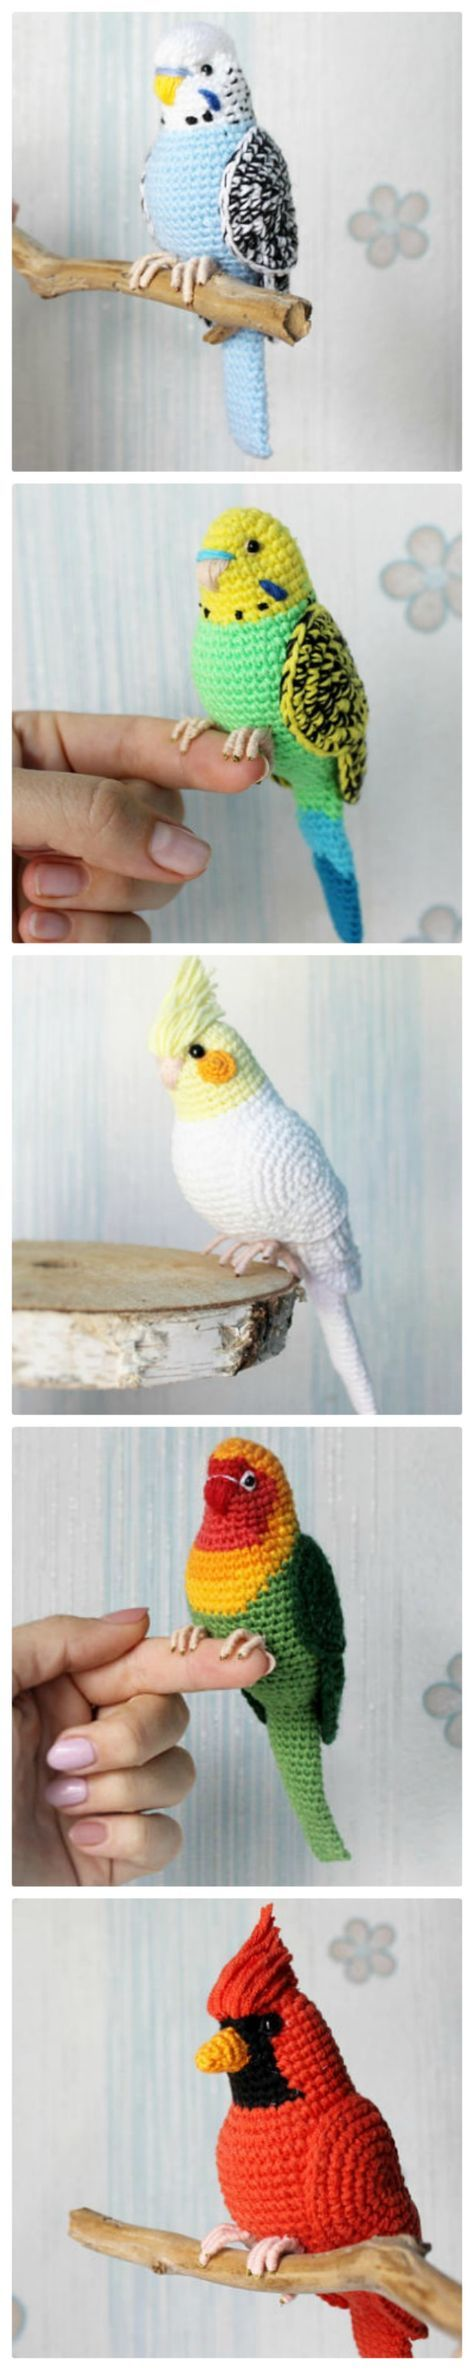 Crochet Bird Patterns Easy Diy Video Instructions Parkieten Haken